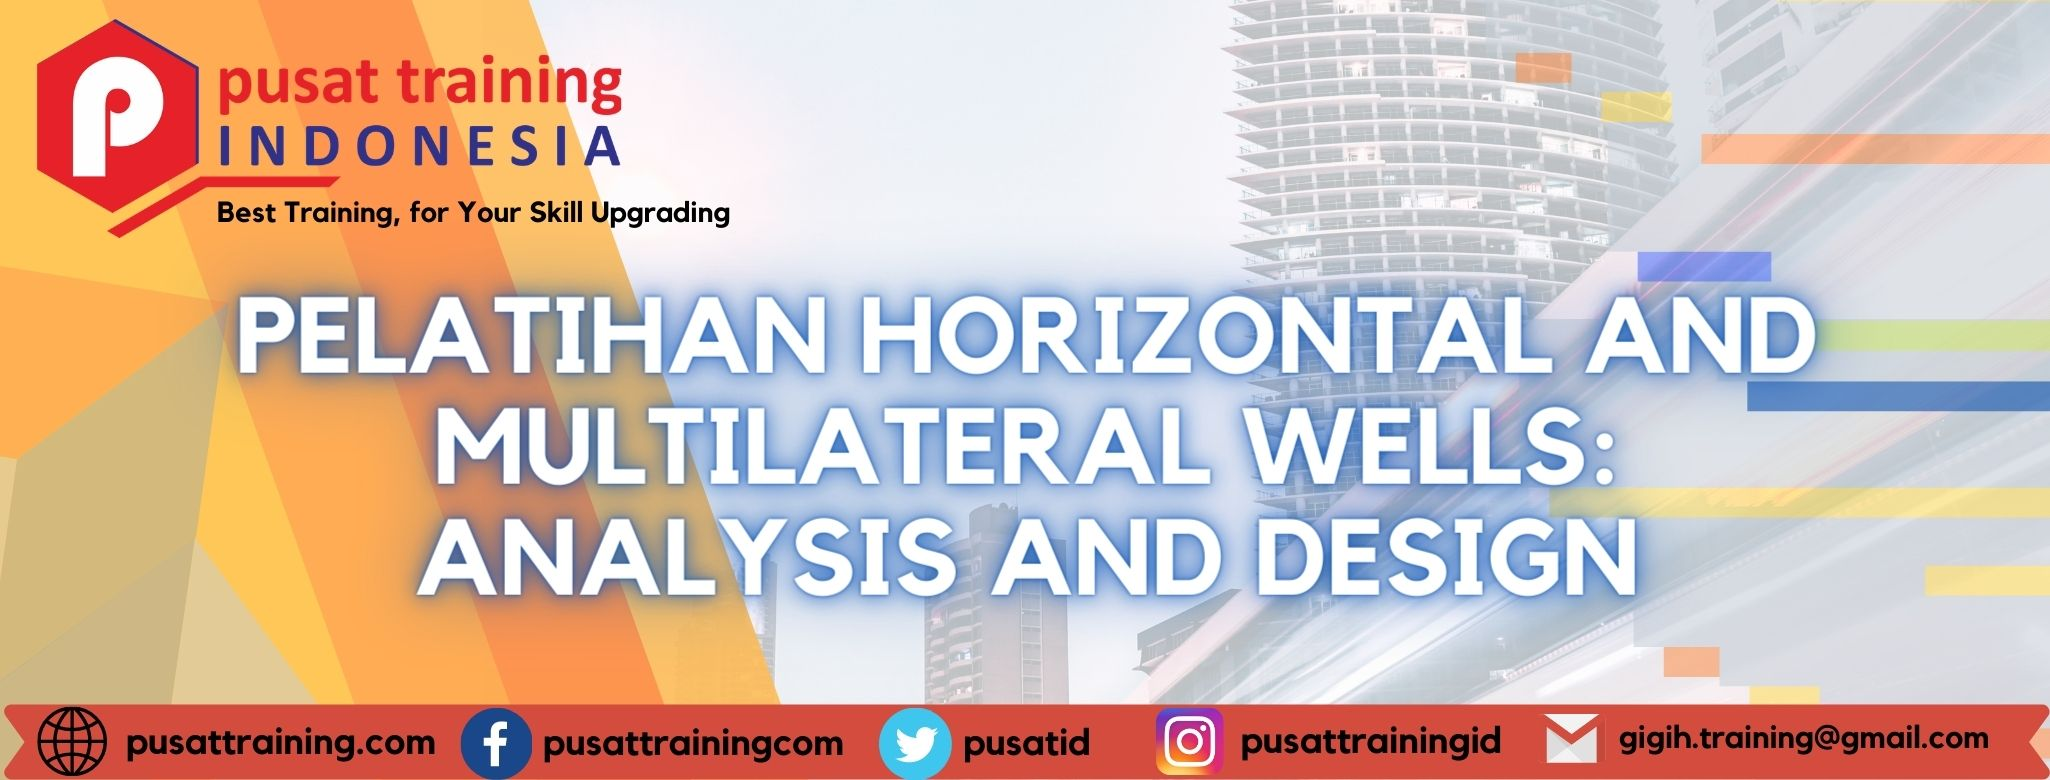 pelatihan-horizontal-and-multilateral-welis-analysis-and-design